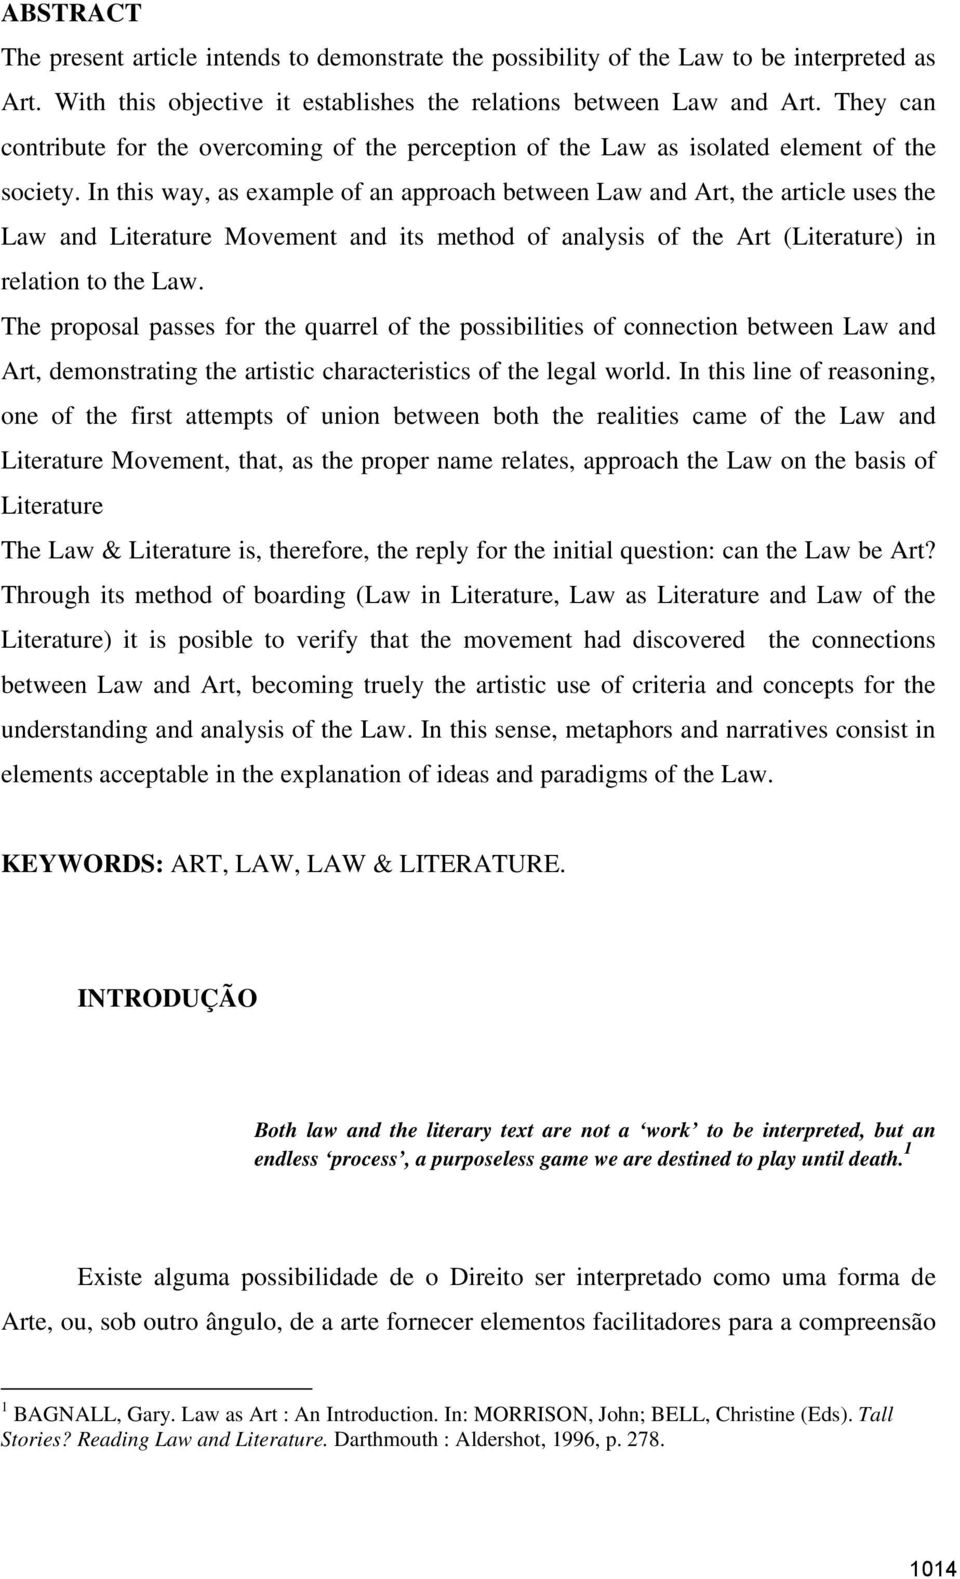 In this way, as example of an approach between Law and Art, the article uses the Law and Literature Movement and its method of analysis of the Art (Literature) in relation to the Law.